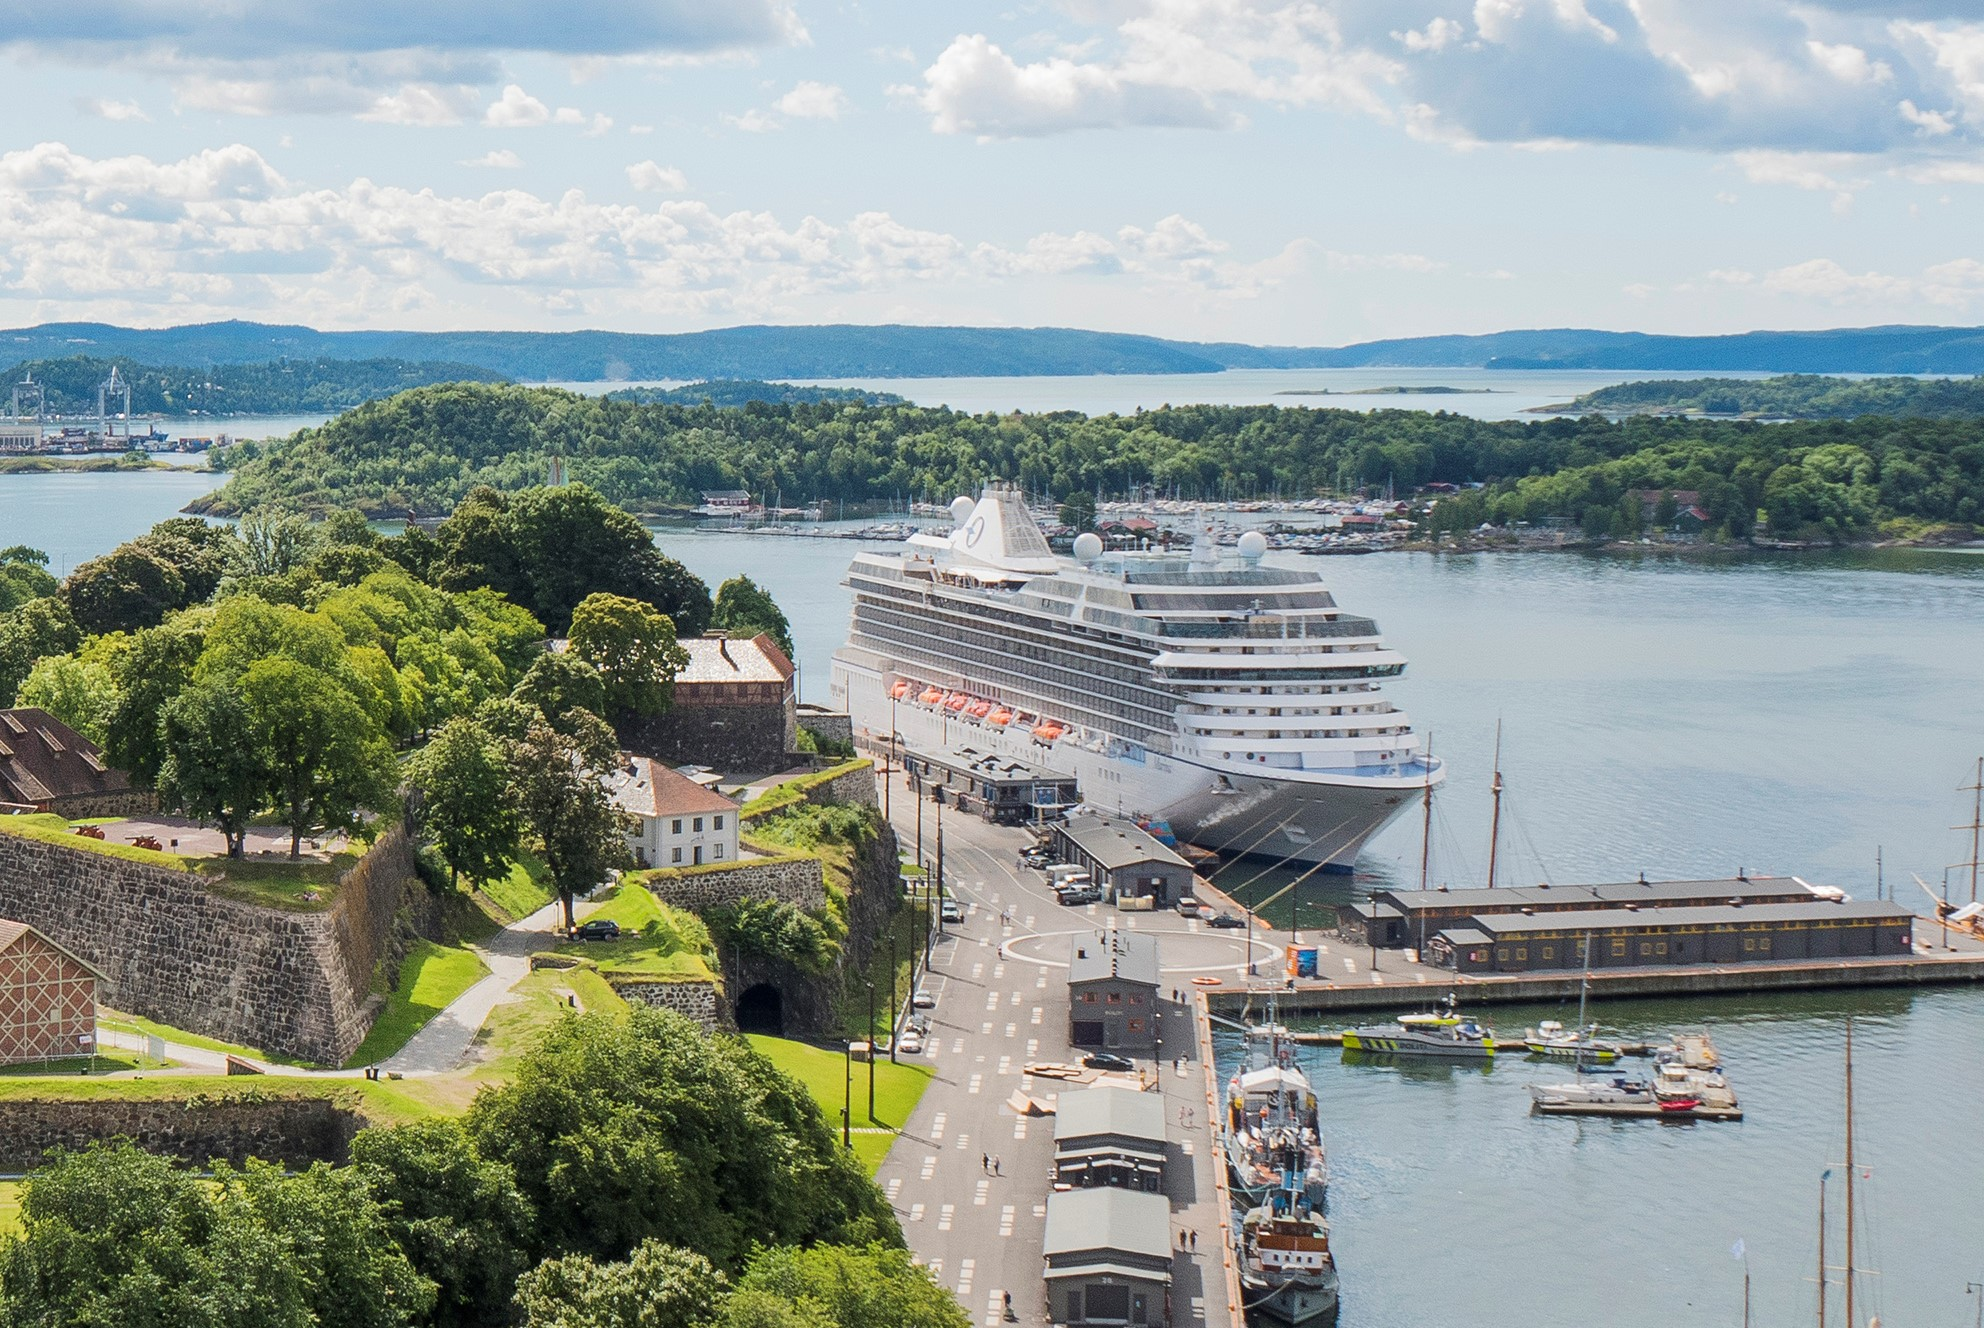 Cruise ship docked by Akershus Fortress